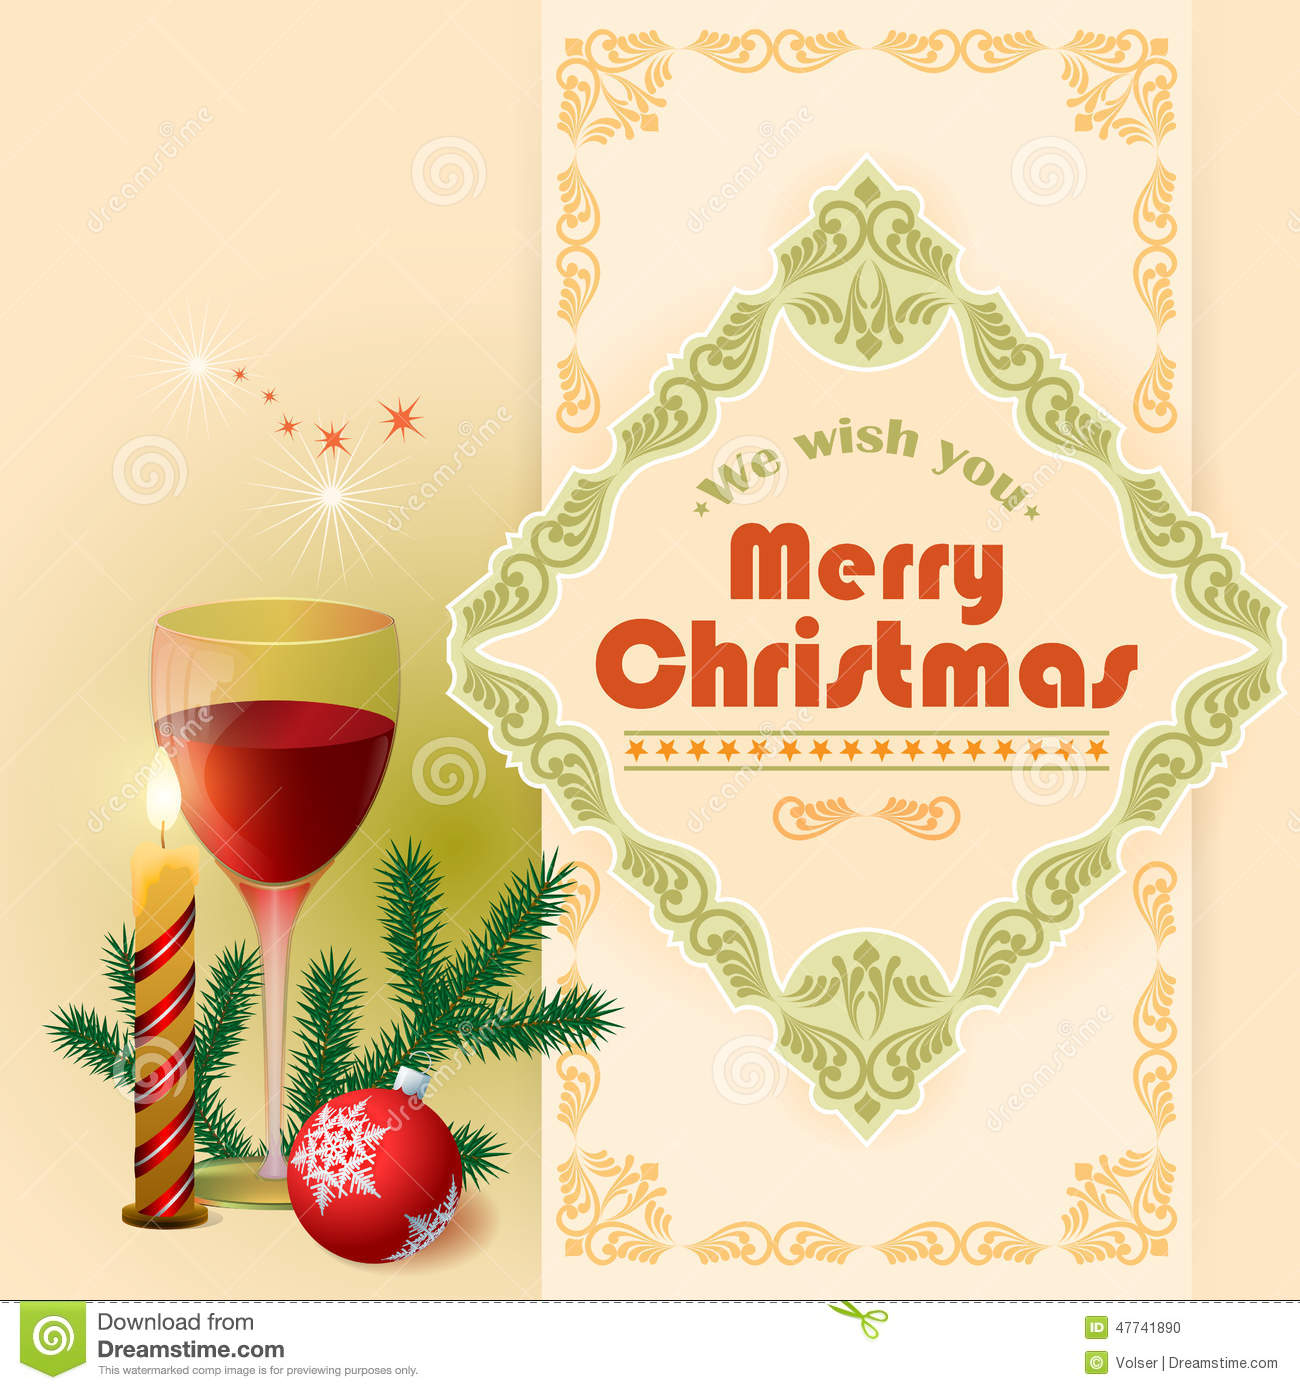 We wish you merry christmas text glass of wine and